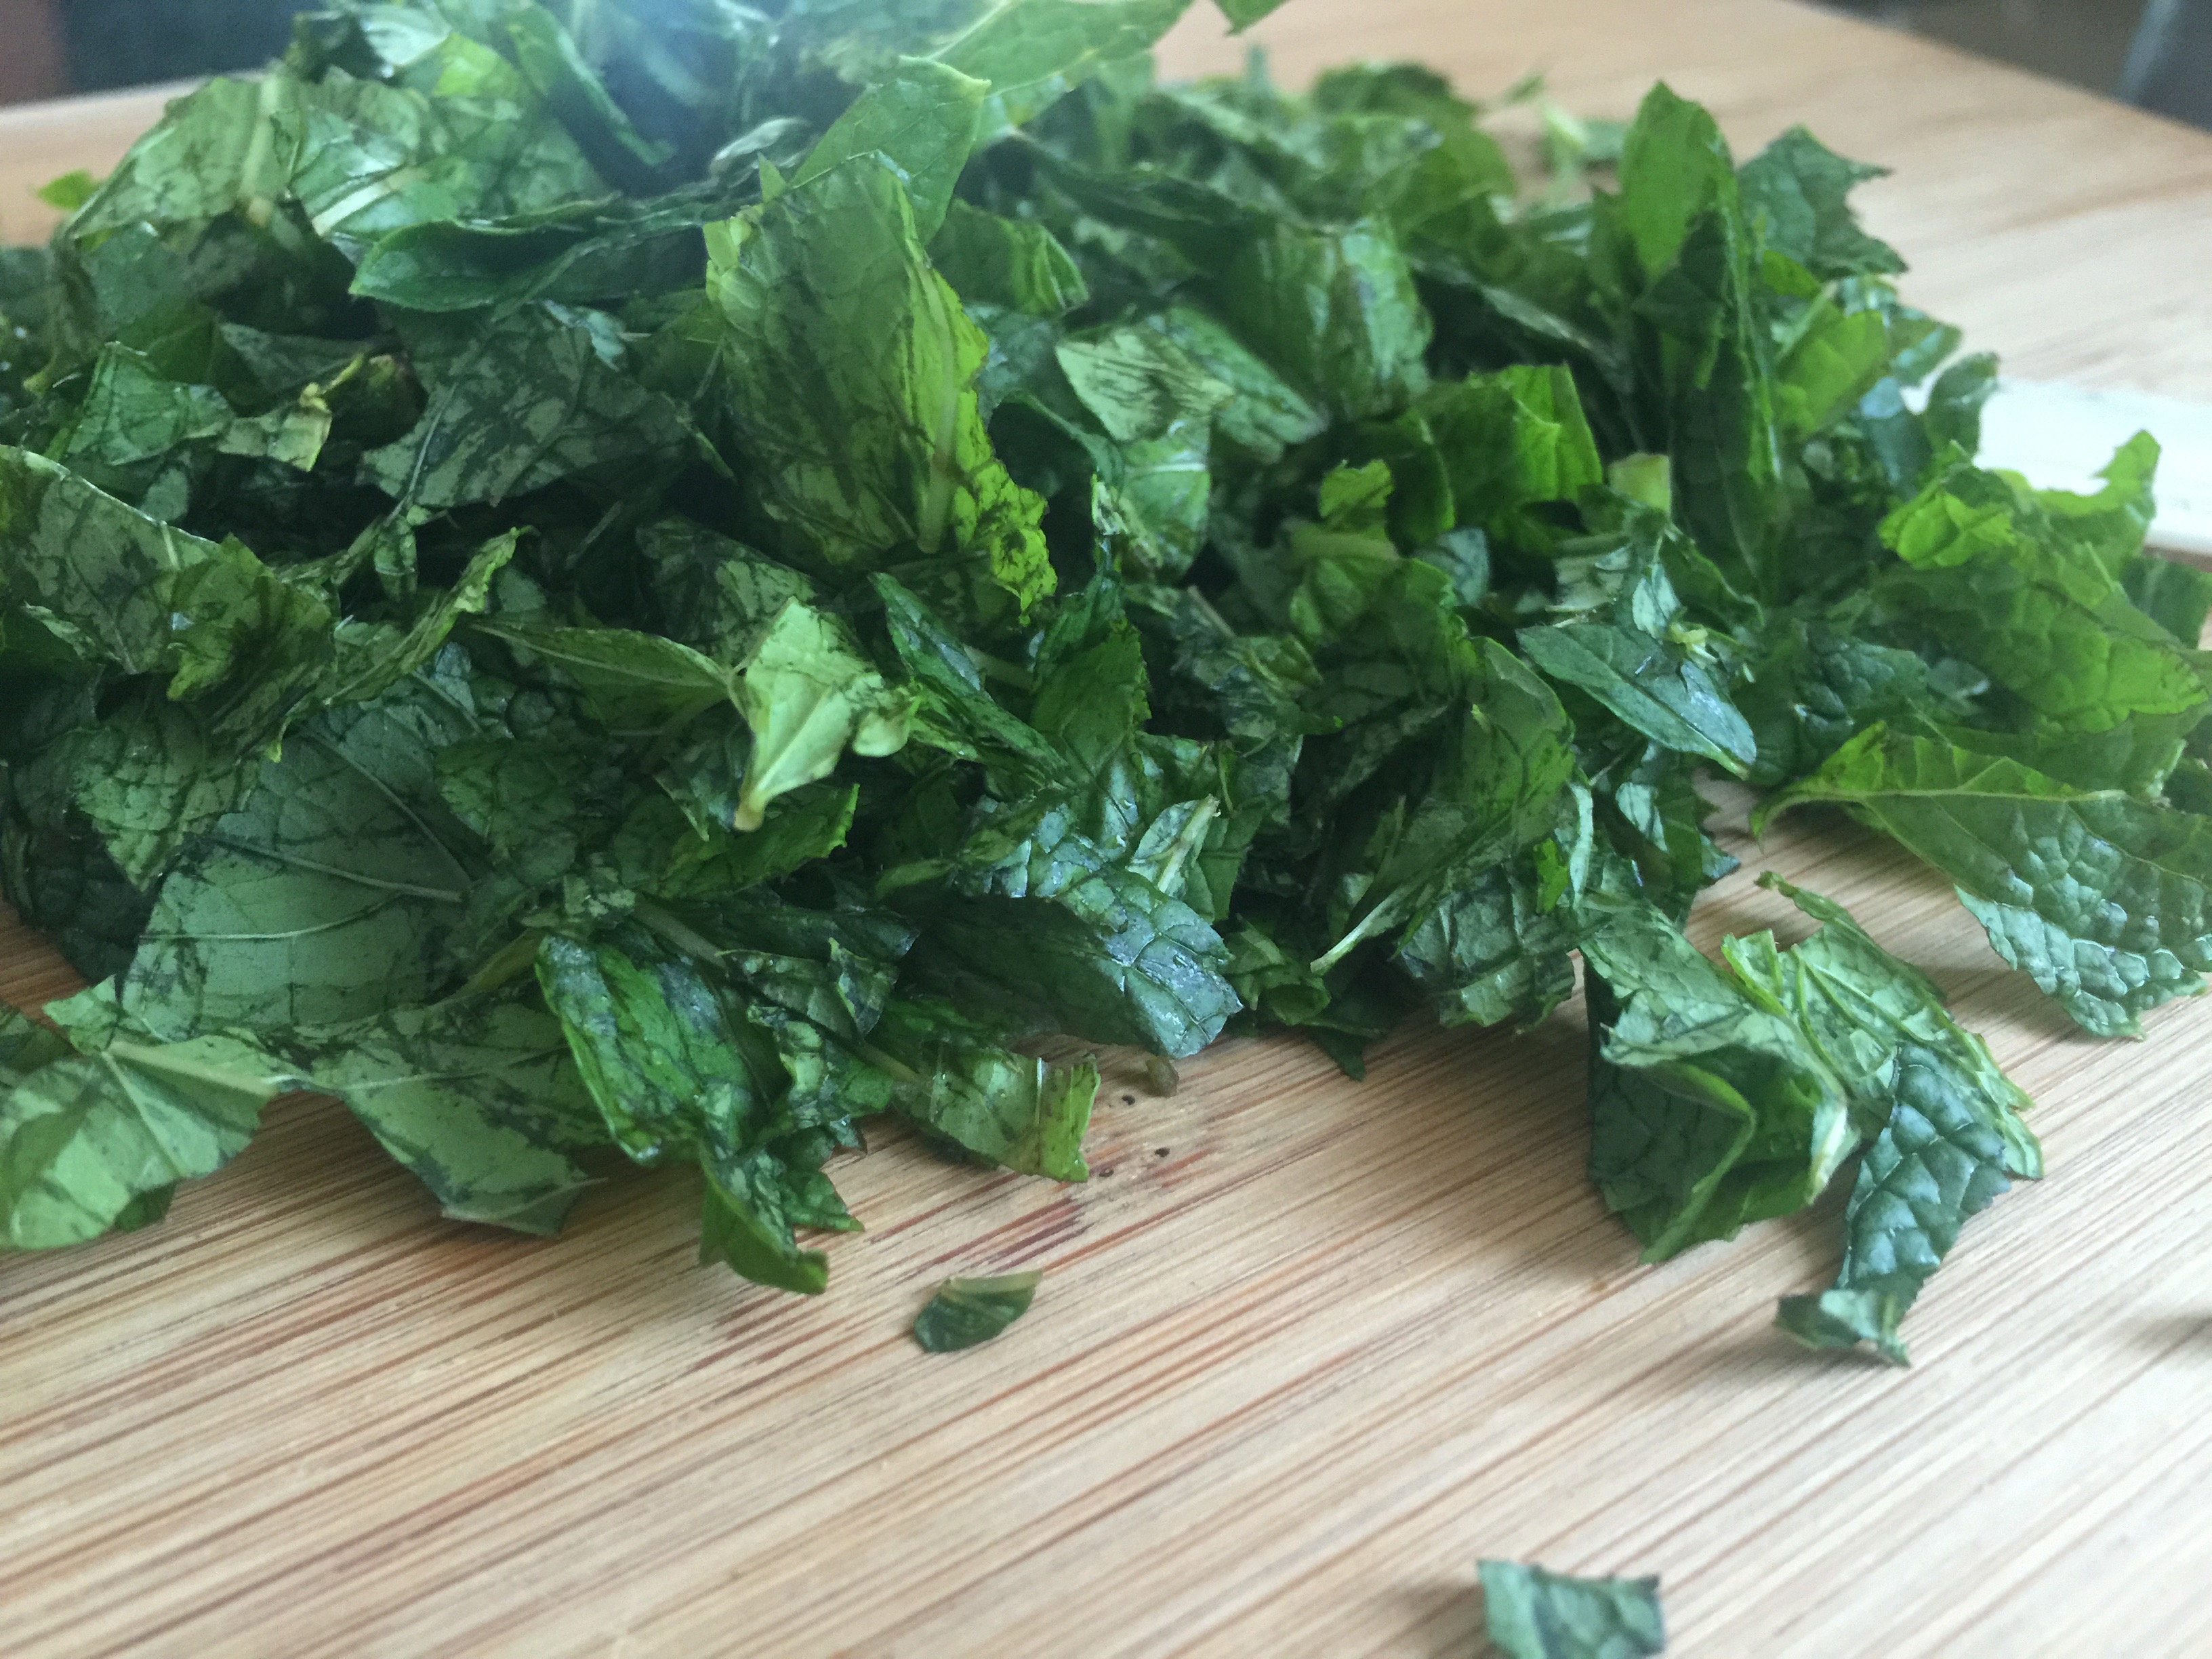 Be Well: Frozen Mint Leaves